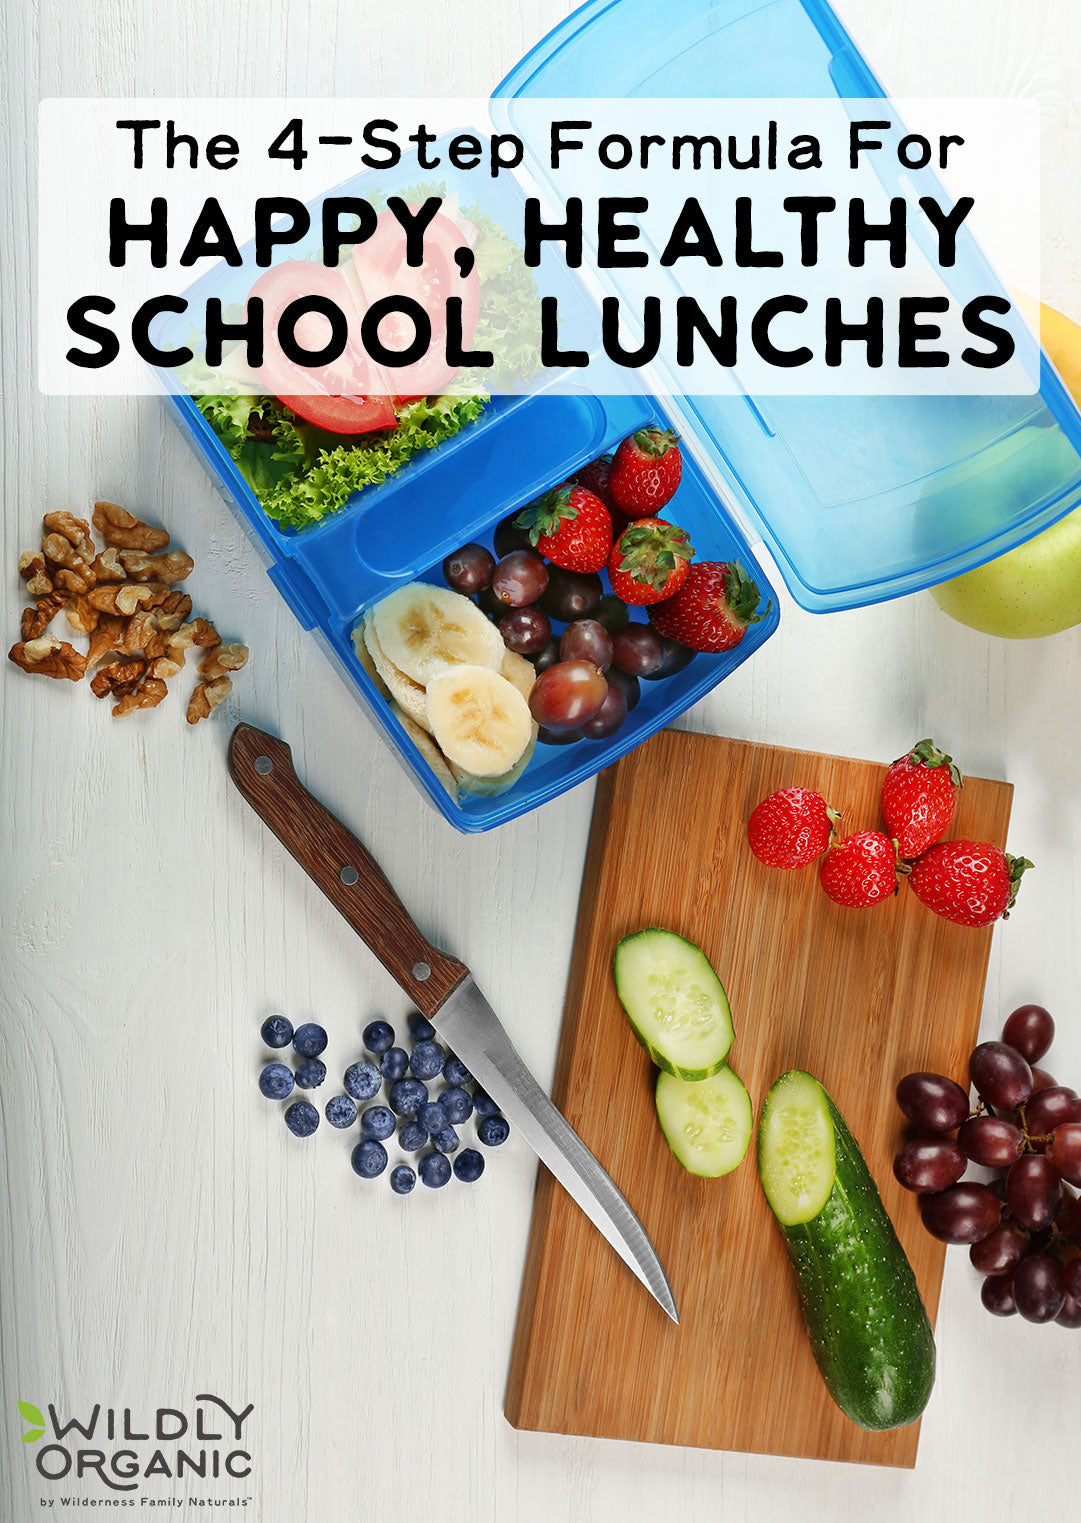 4-Step Formula For Happy, Healthy School Lunches | Back to school means back to packing lunches! And we don't mean plastic-wrapped crackers, cheese, and processed lunch meat with some foil-covered pudding cup! A healthy lunch is just as necessary as a filling breakfast, and simple foods are the most nutritious. So here's an easy 4-step formula for happy, healthy school lunches! | WildlyOrganic.com